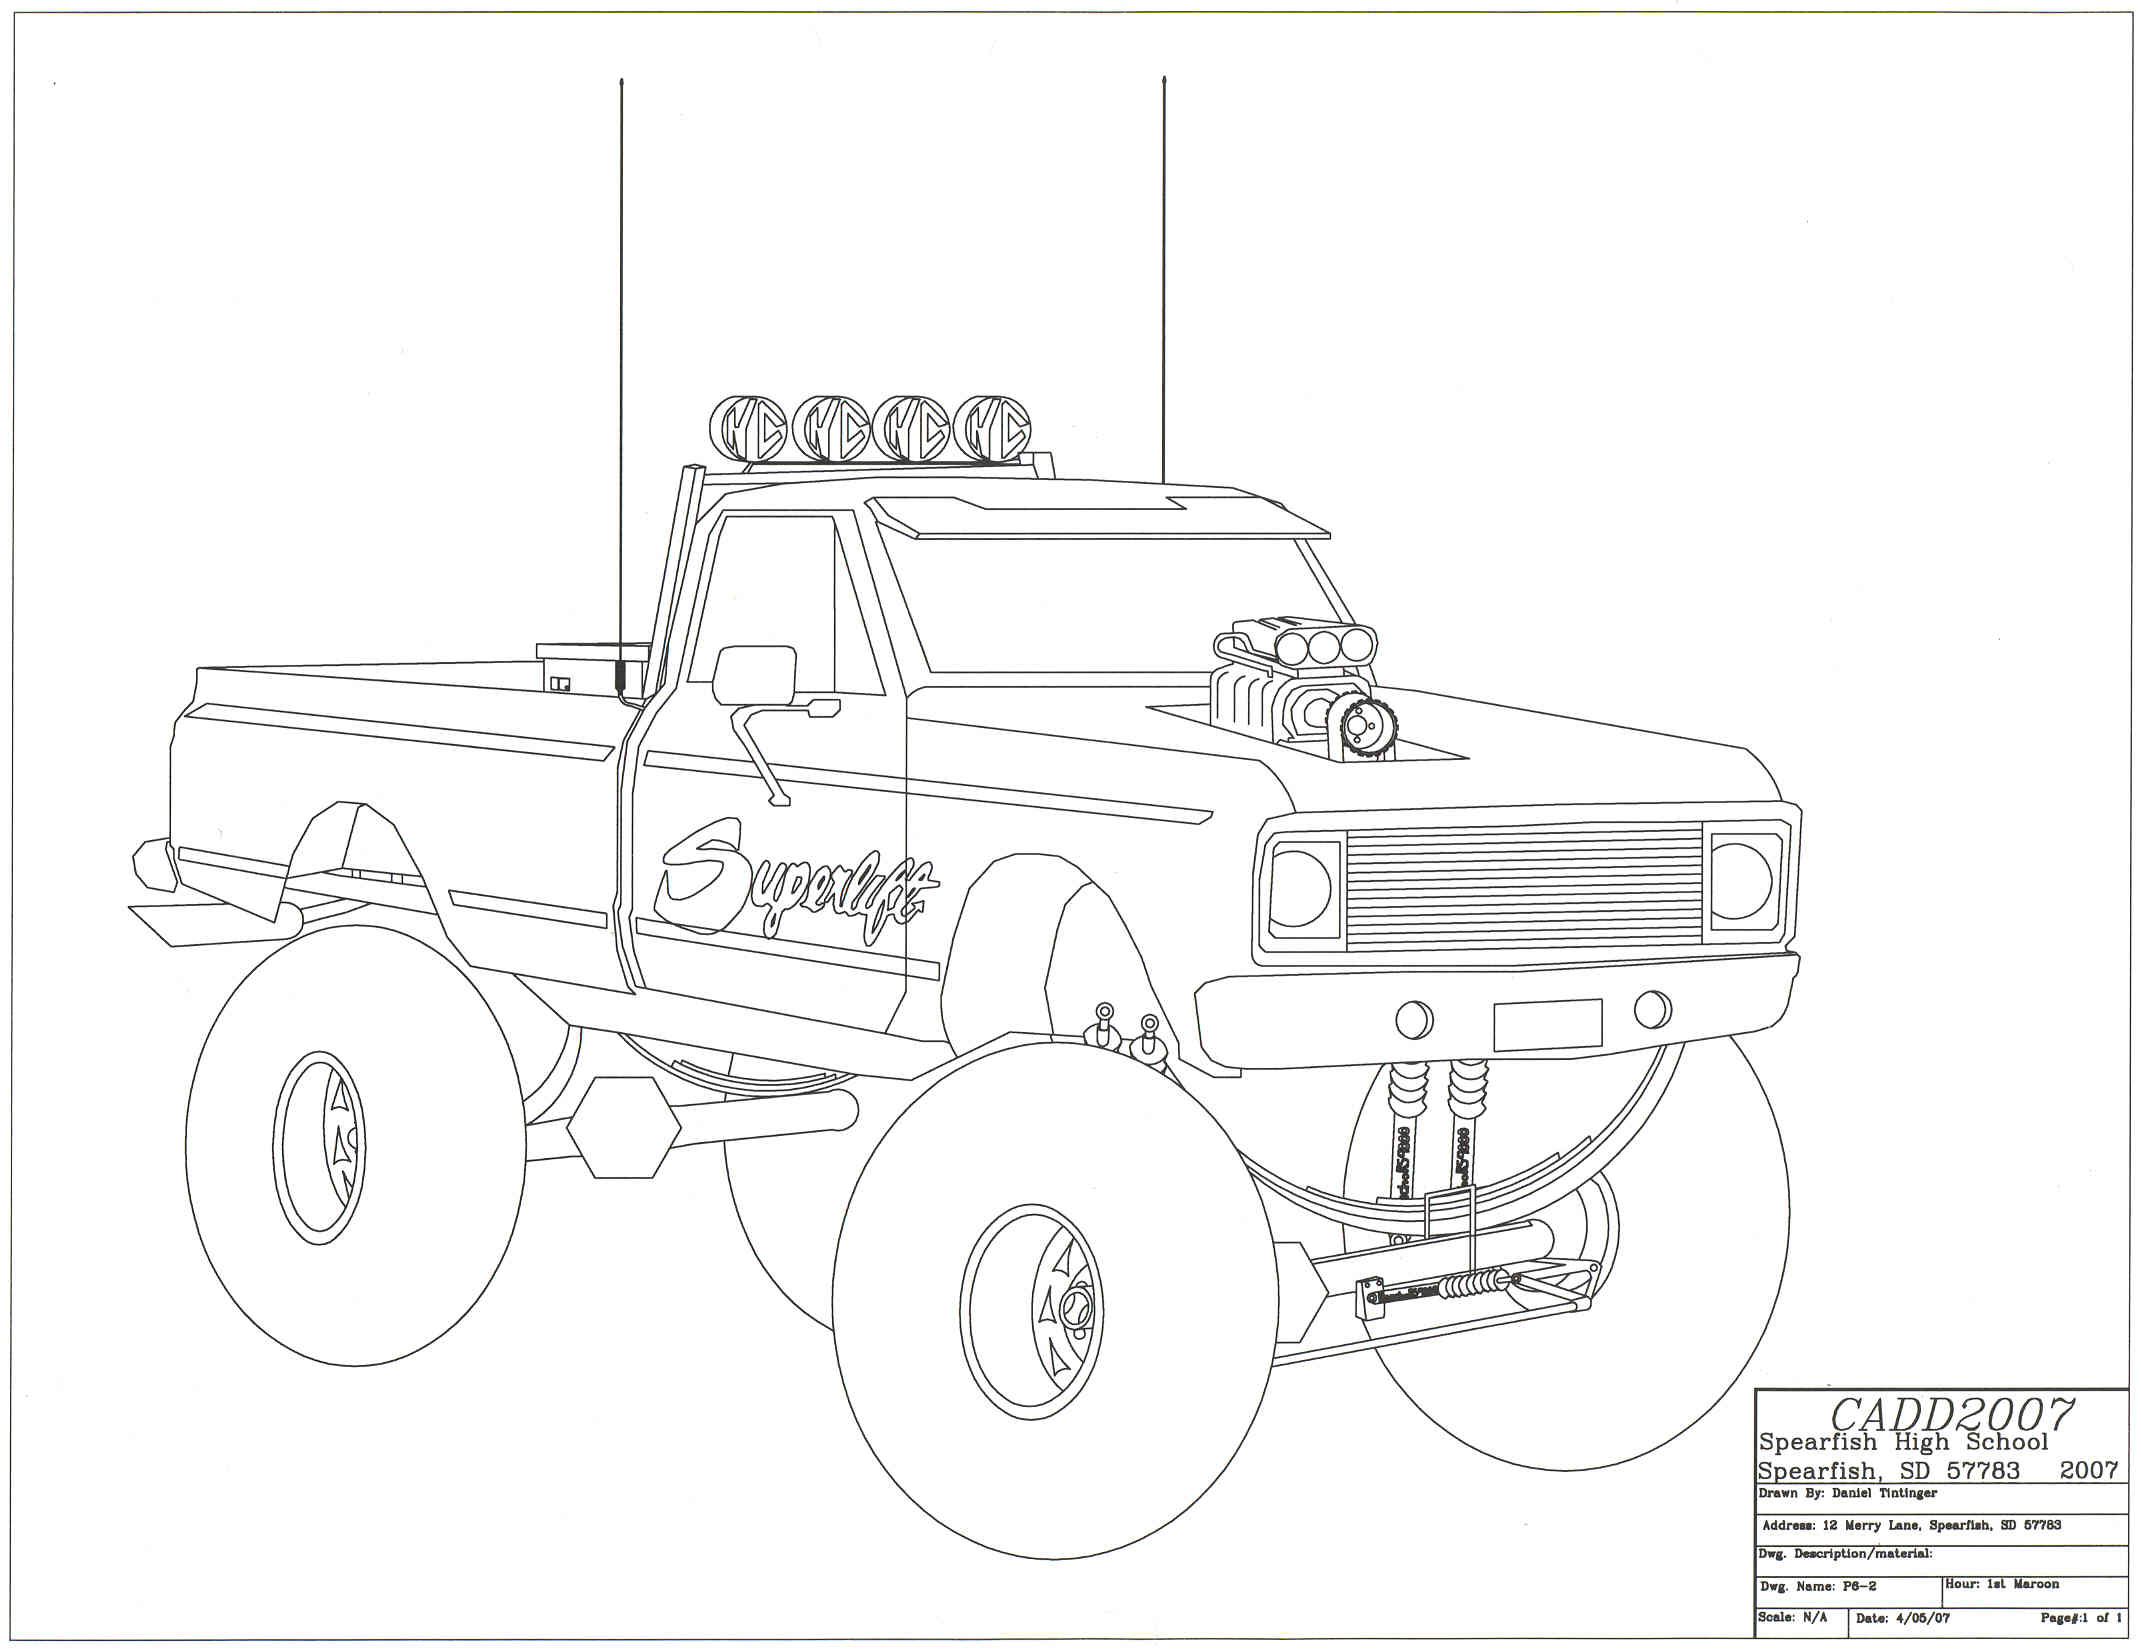 Classic Truck Drawing At Free For Personal Use 1955 Ford F100 Lowrider 2141x1651 Easy Drawings Of Popular Cars